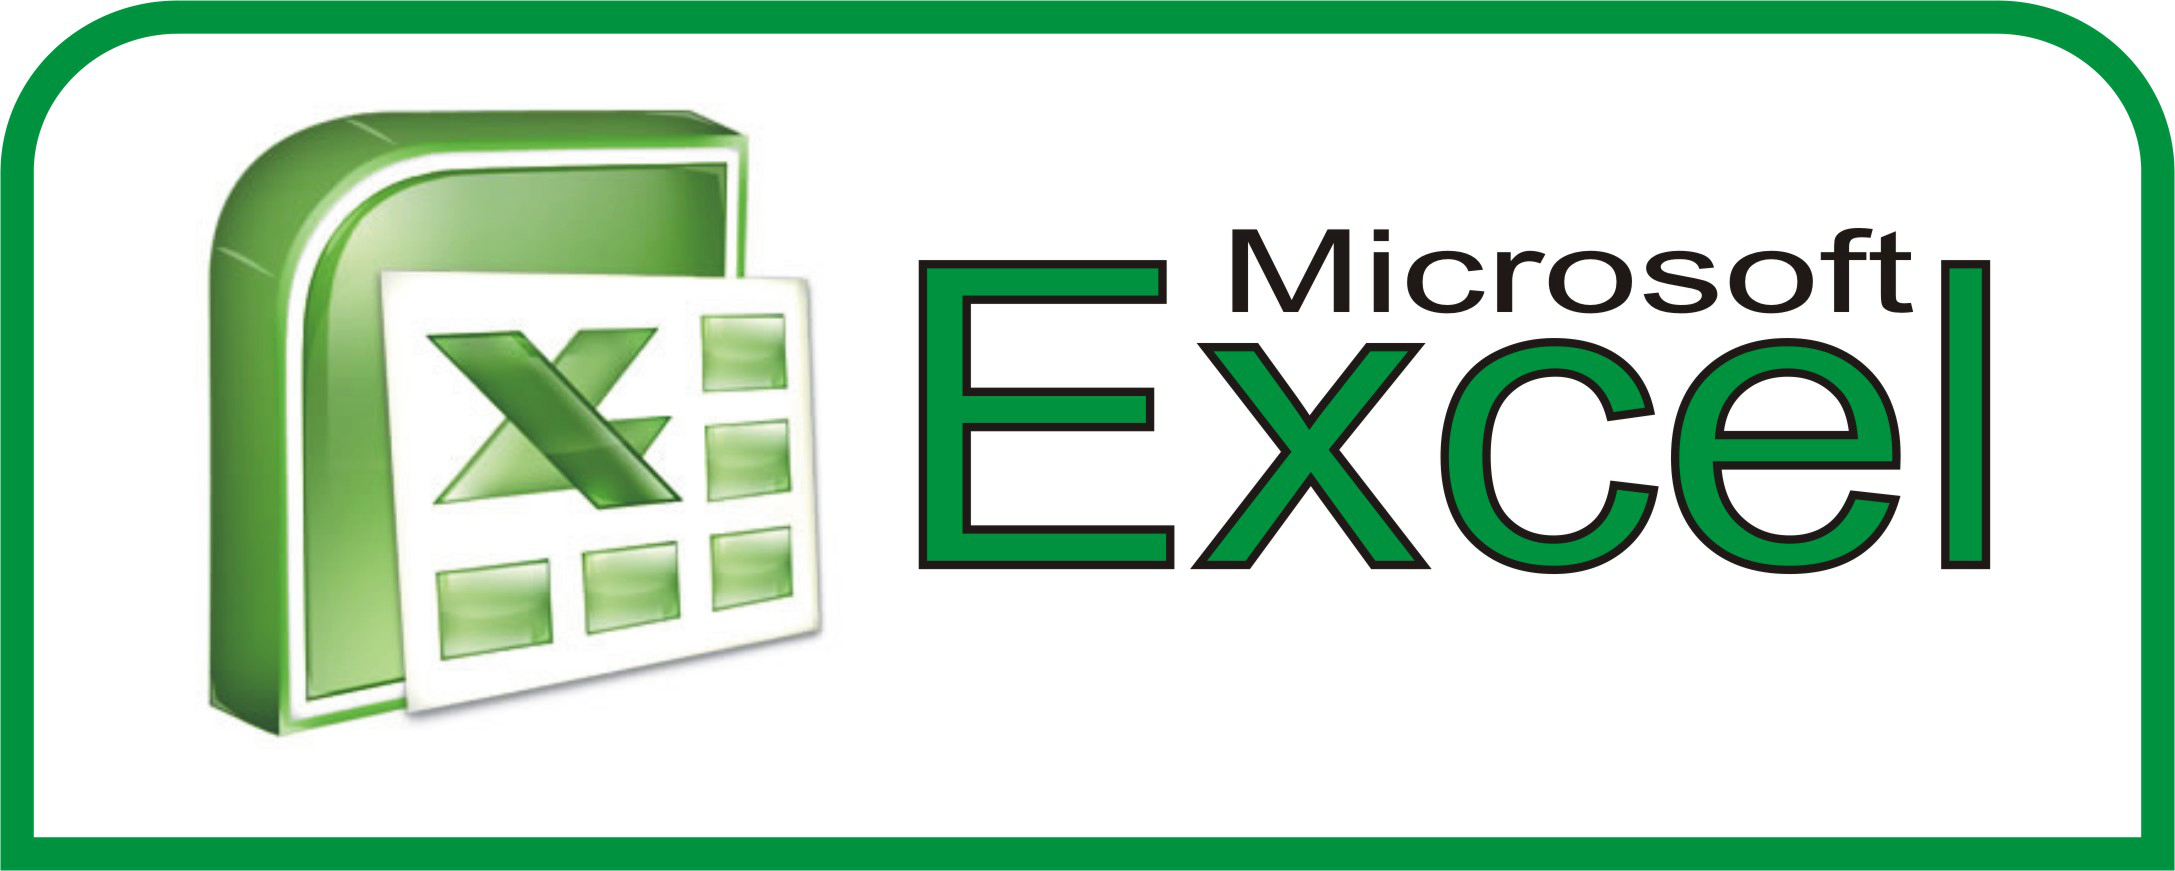 Ediblewildsus  Splendid  Excel Shortcuts You Probably Didnt Know About  Techdissected With Marvelous Code Excel Besides Excel Compare Columns For Differences Furthermore Ms Excel Countifs With Adorable Yearly Budget Template Excel Also Excel Formula Multiple If In Addition Create A Report In Excel As A Table And Excel Wbs Template As Well As Calculate Compound Annual Growth Rate Excel Additionally Len Formula In Excel From Techdissectedcom With Ediblewildsus  Marvelous  Excel Shortcuts You Probably Didnt Know About  Techdissected With Adorable Code Excel Besides Excel Compare Columns For Differences Furthermore Ms Excel Countifs And Splendid Yearly Budget Template Excel Also Excel Formula Multiple If In Addition Create A Report In Excel As A Table From Techdissectedcom